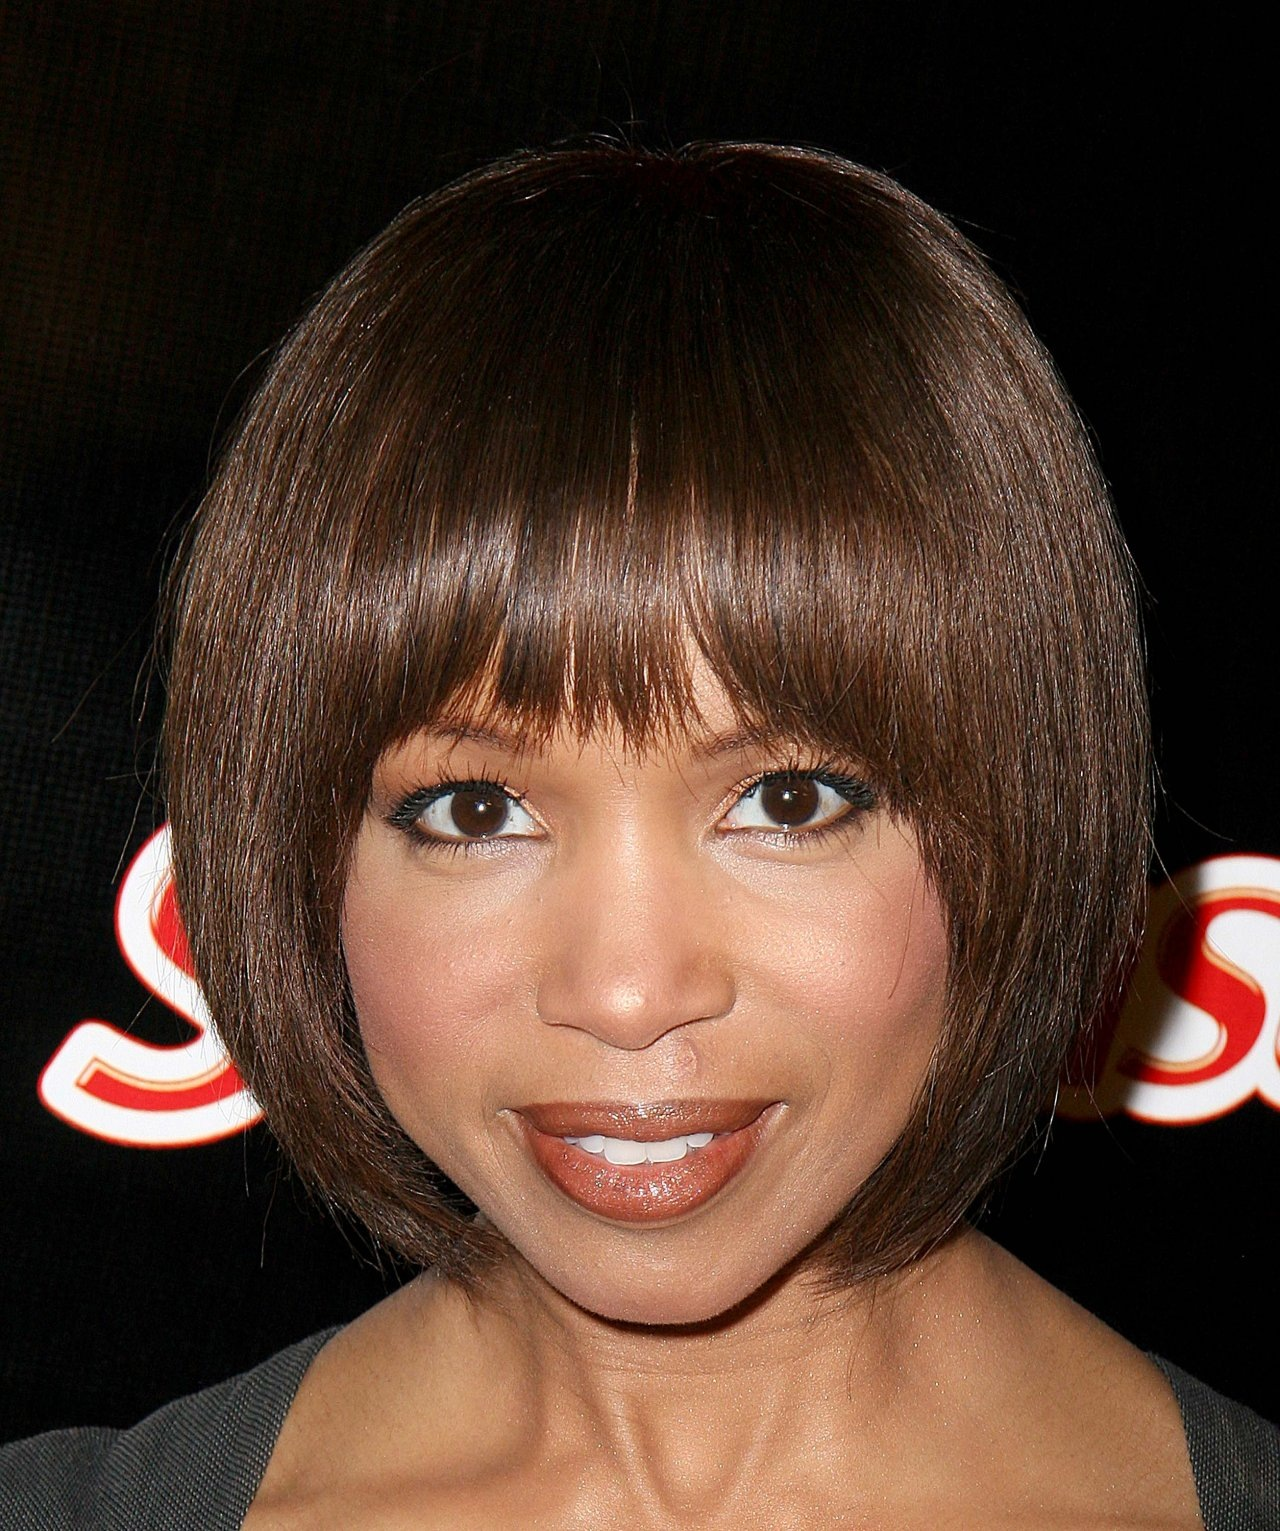 Eva Wyrwal Wallpaper: Celebrity Elise Neal Photos. Pictures, Wallpapers, Elise